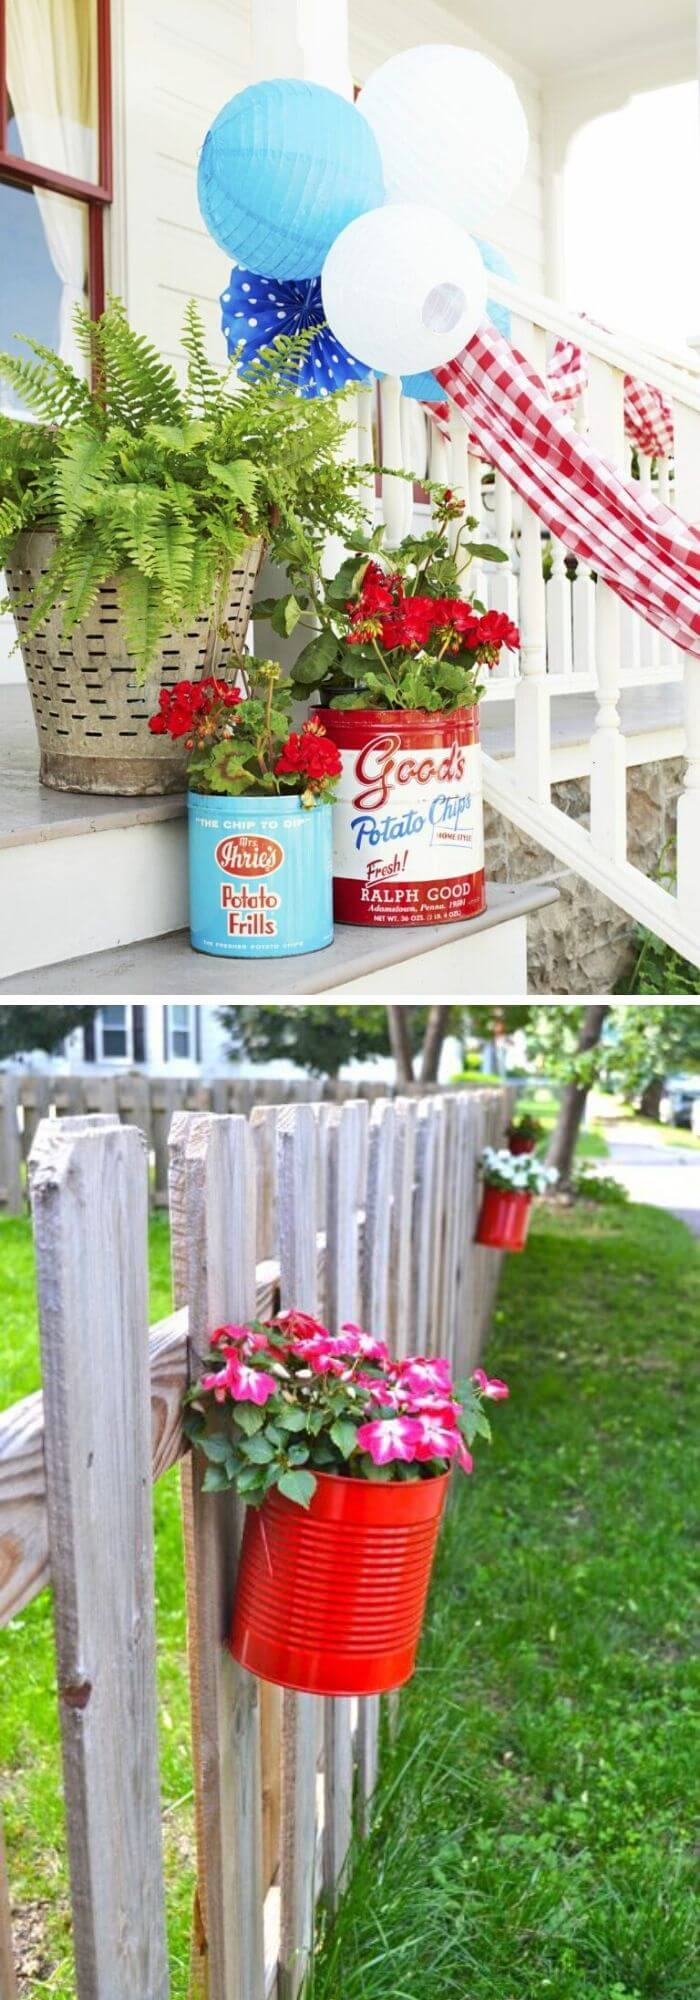 A Backyard with Recycled Vintage Tins